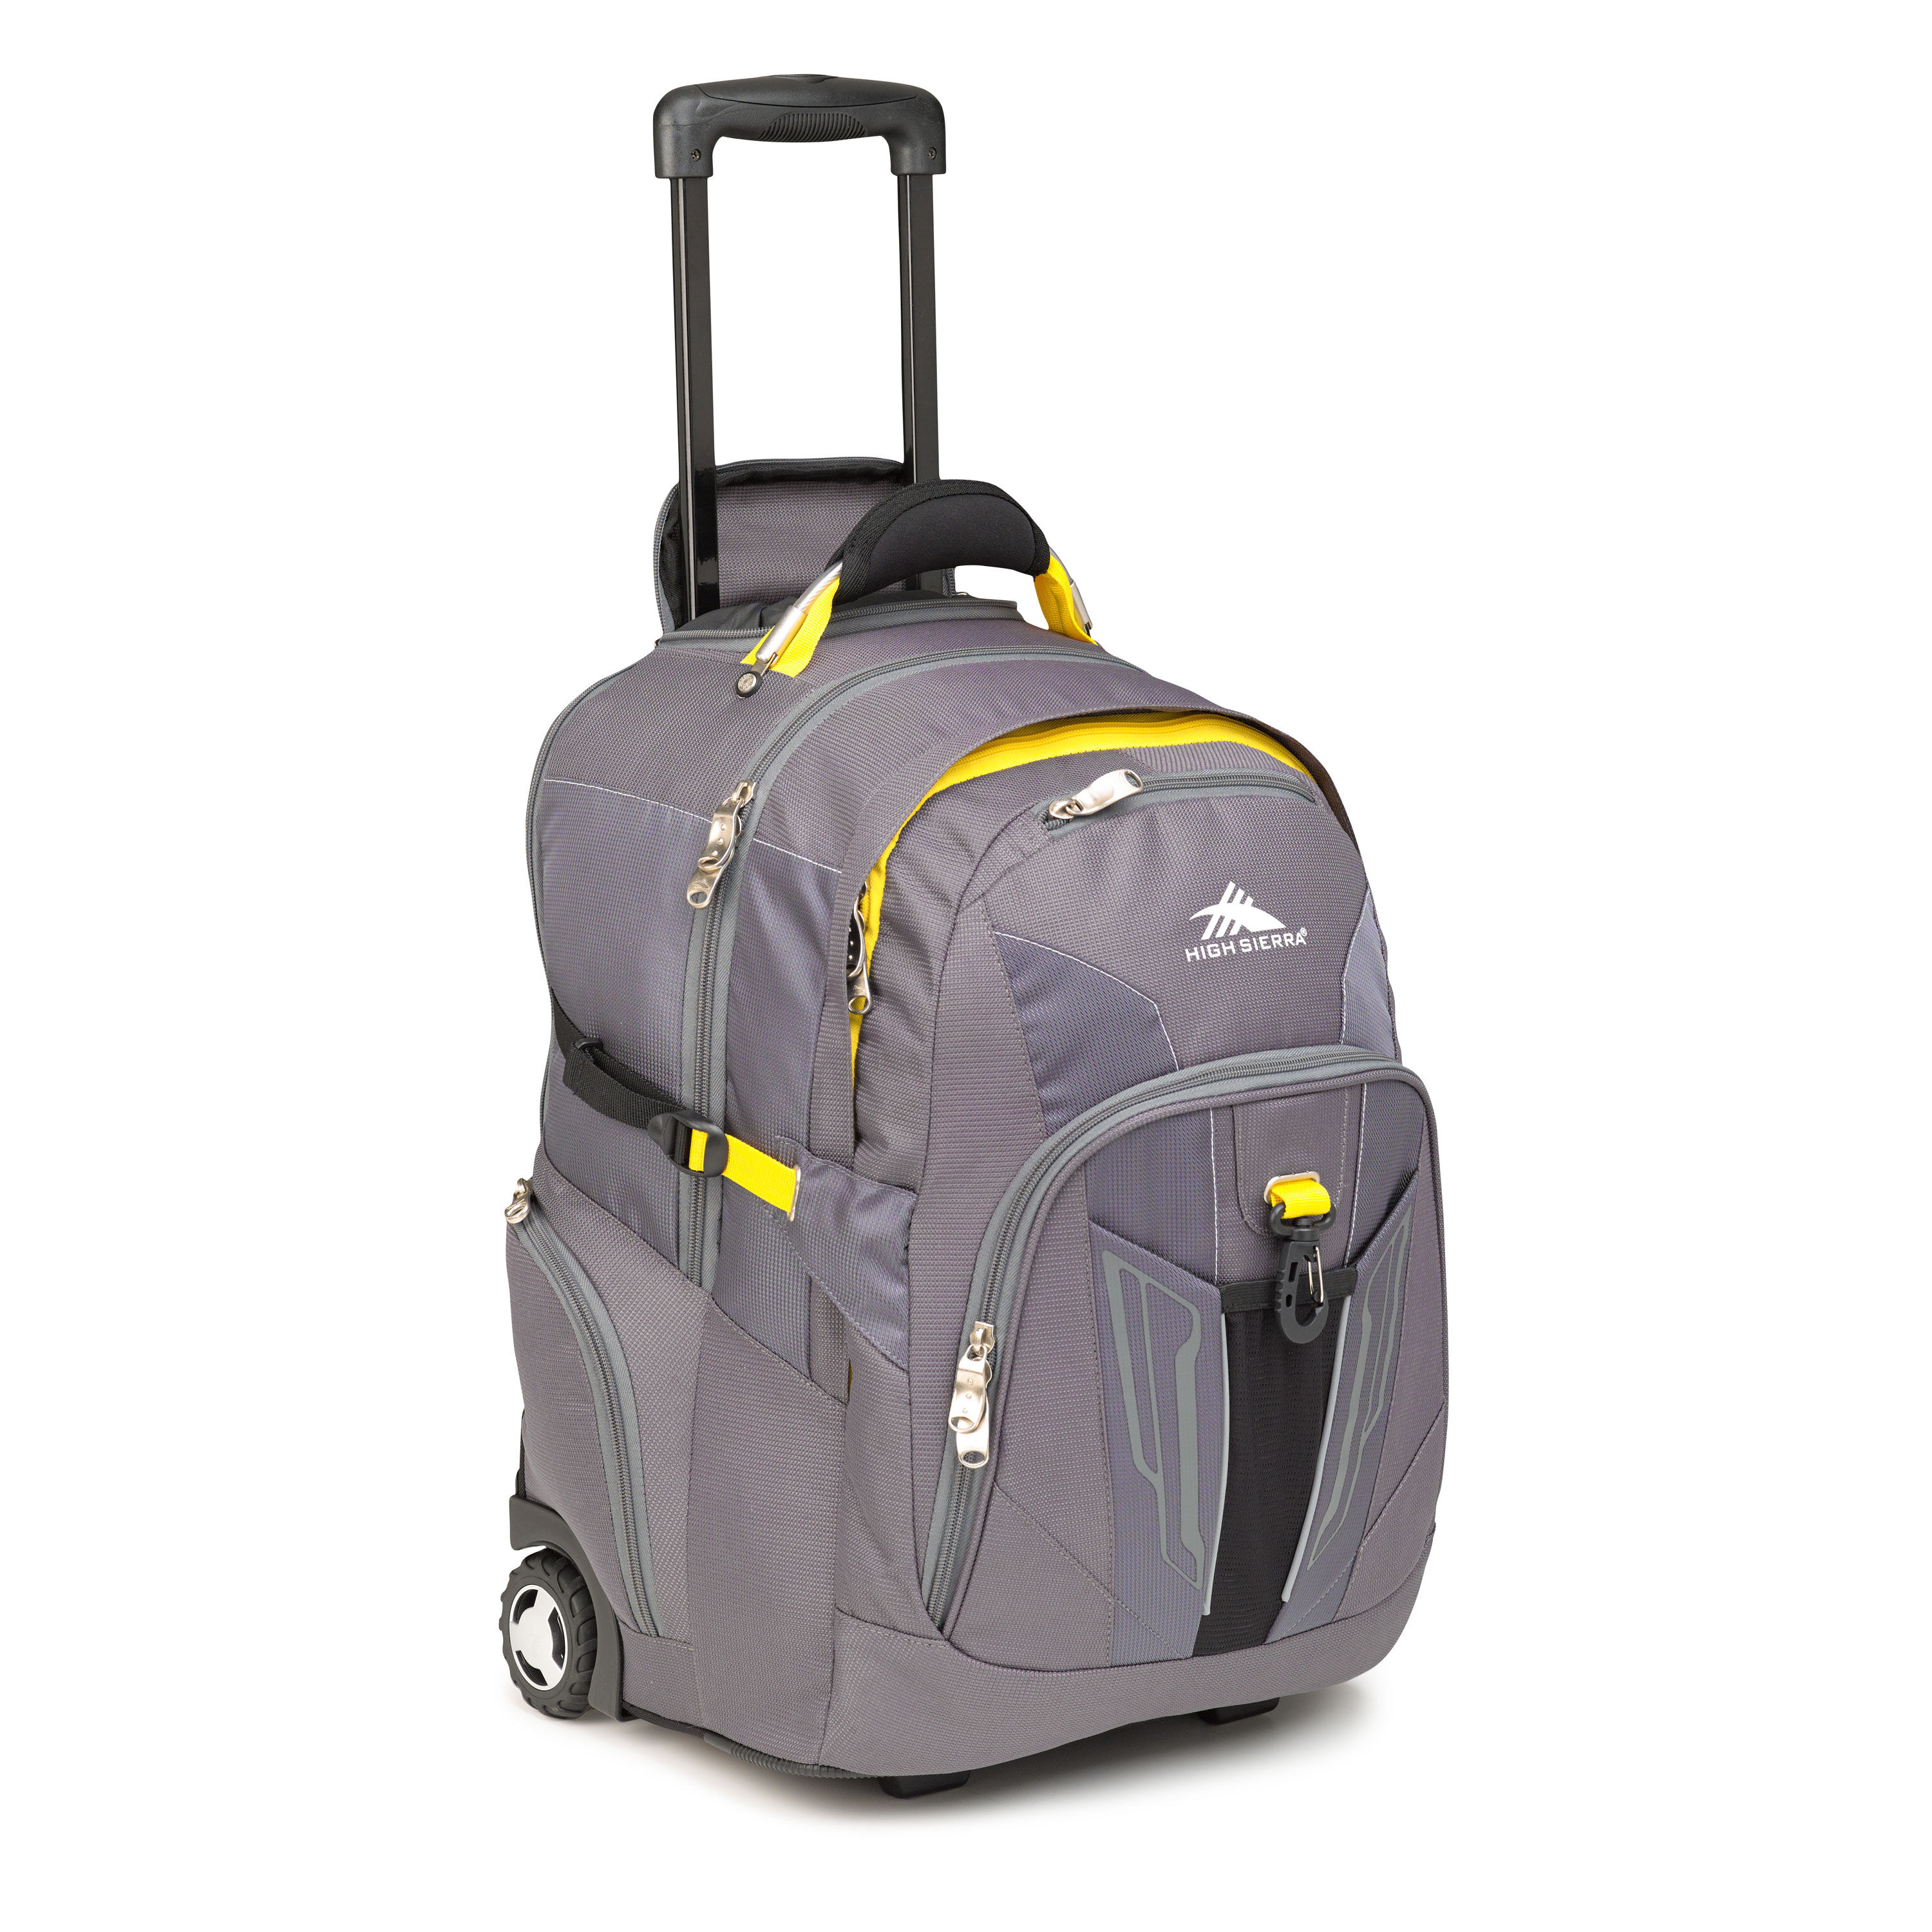 high sierra prime access wheeled backpack in the color charcoal mercury